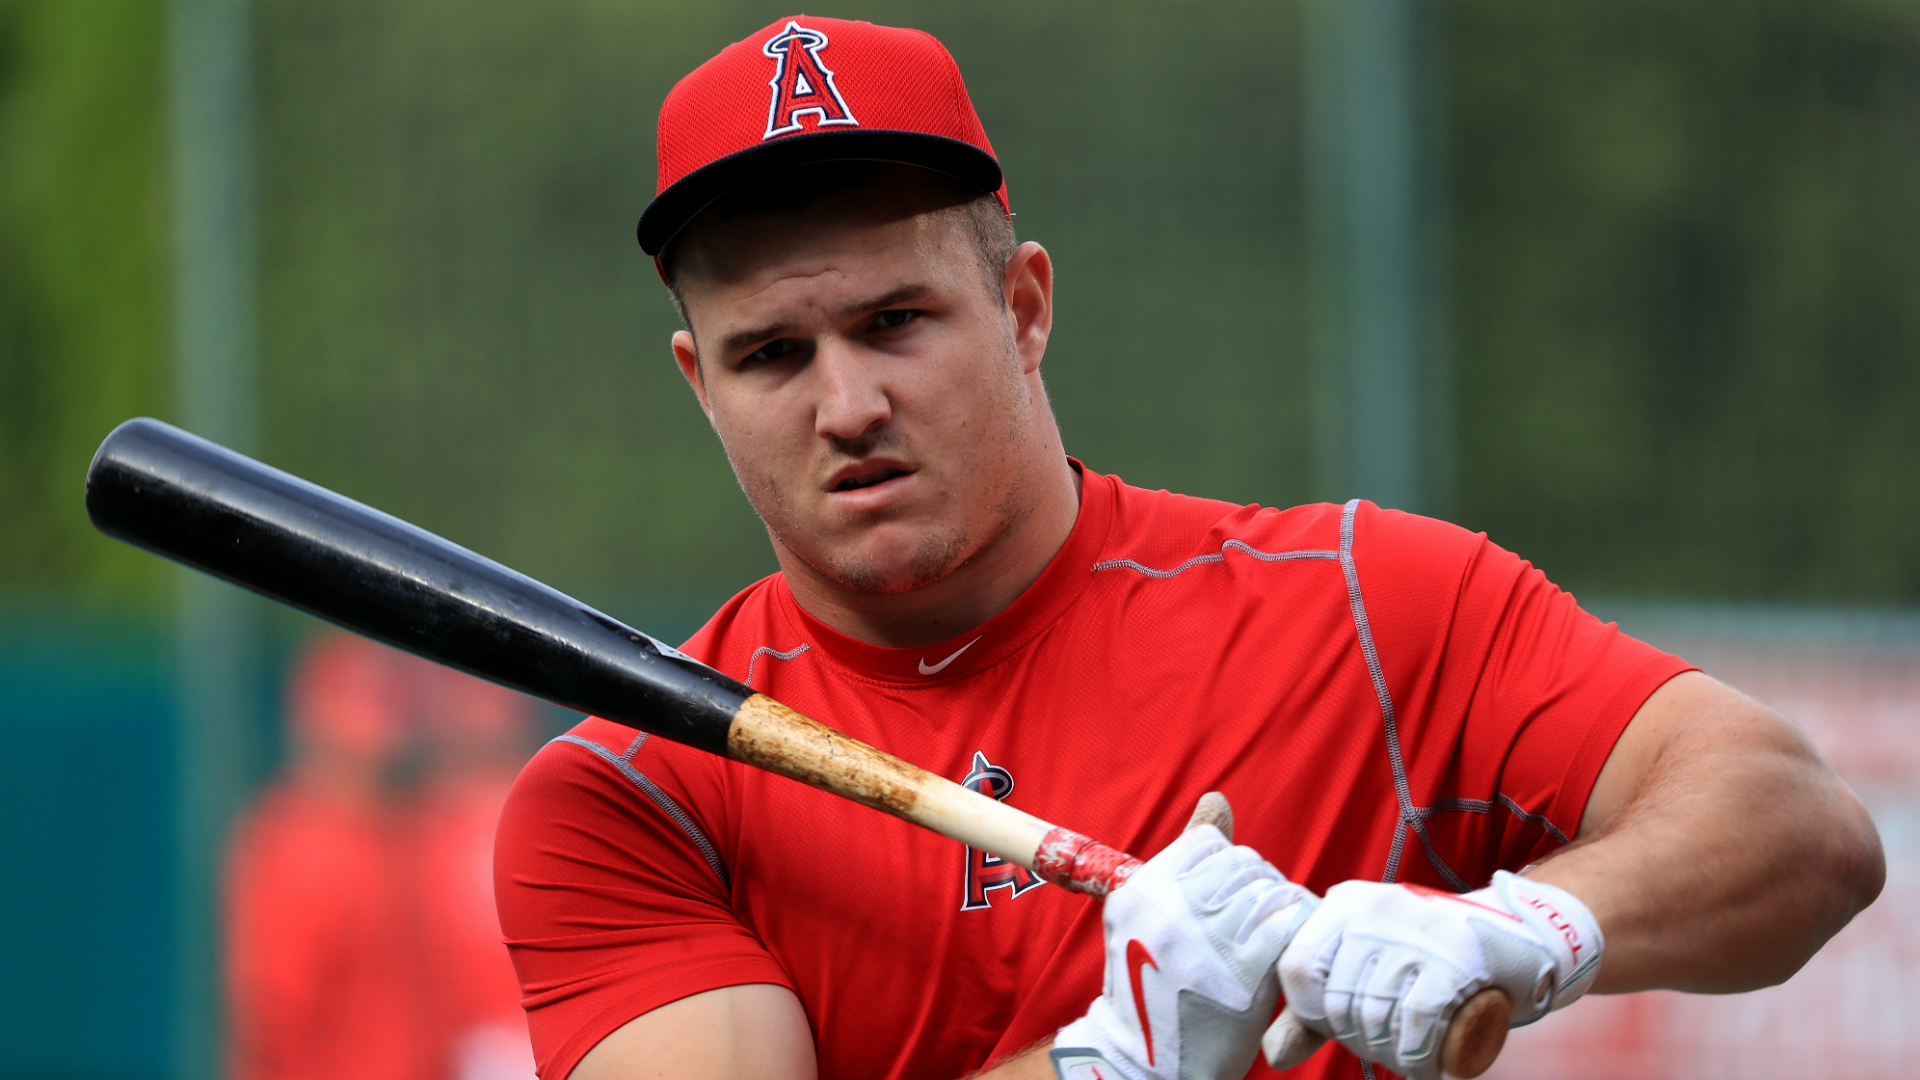 Miketrout Cropped